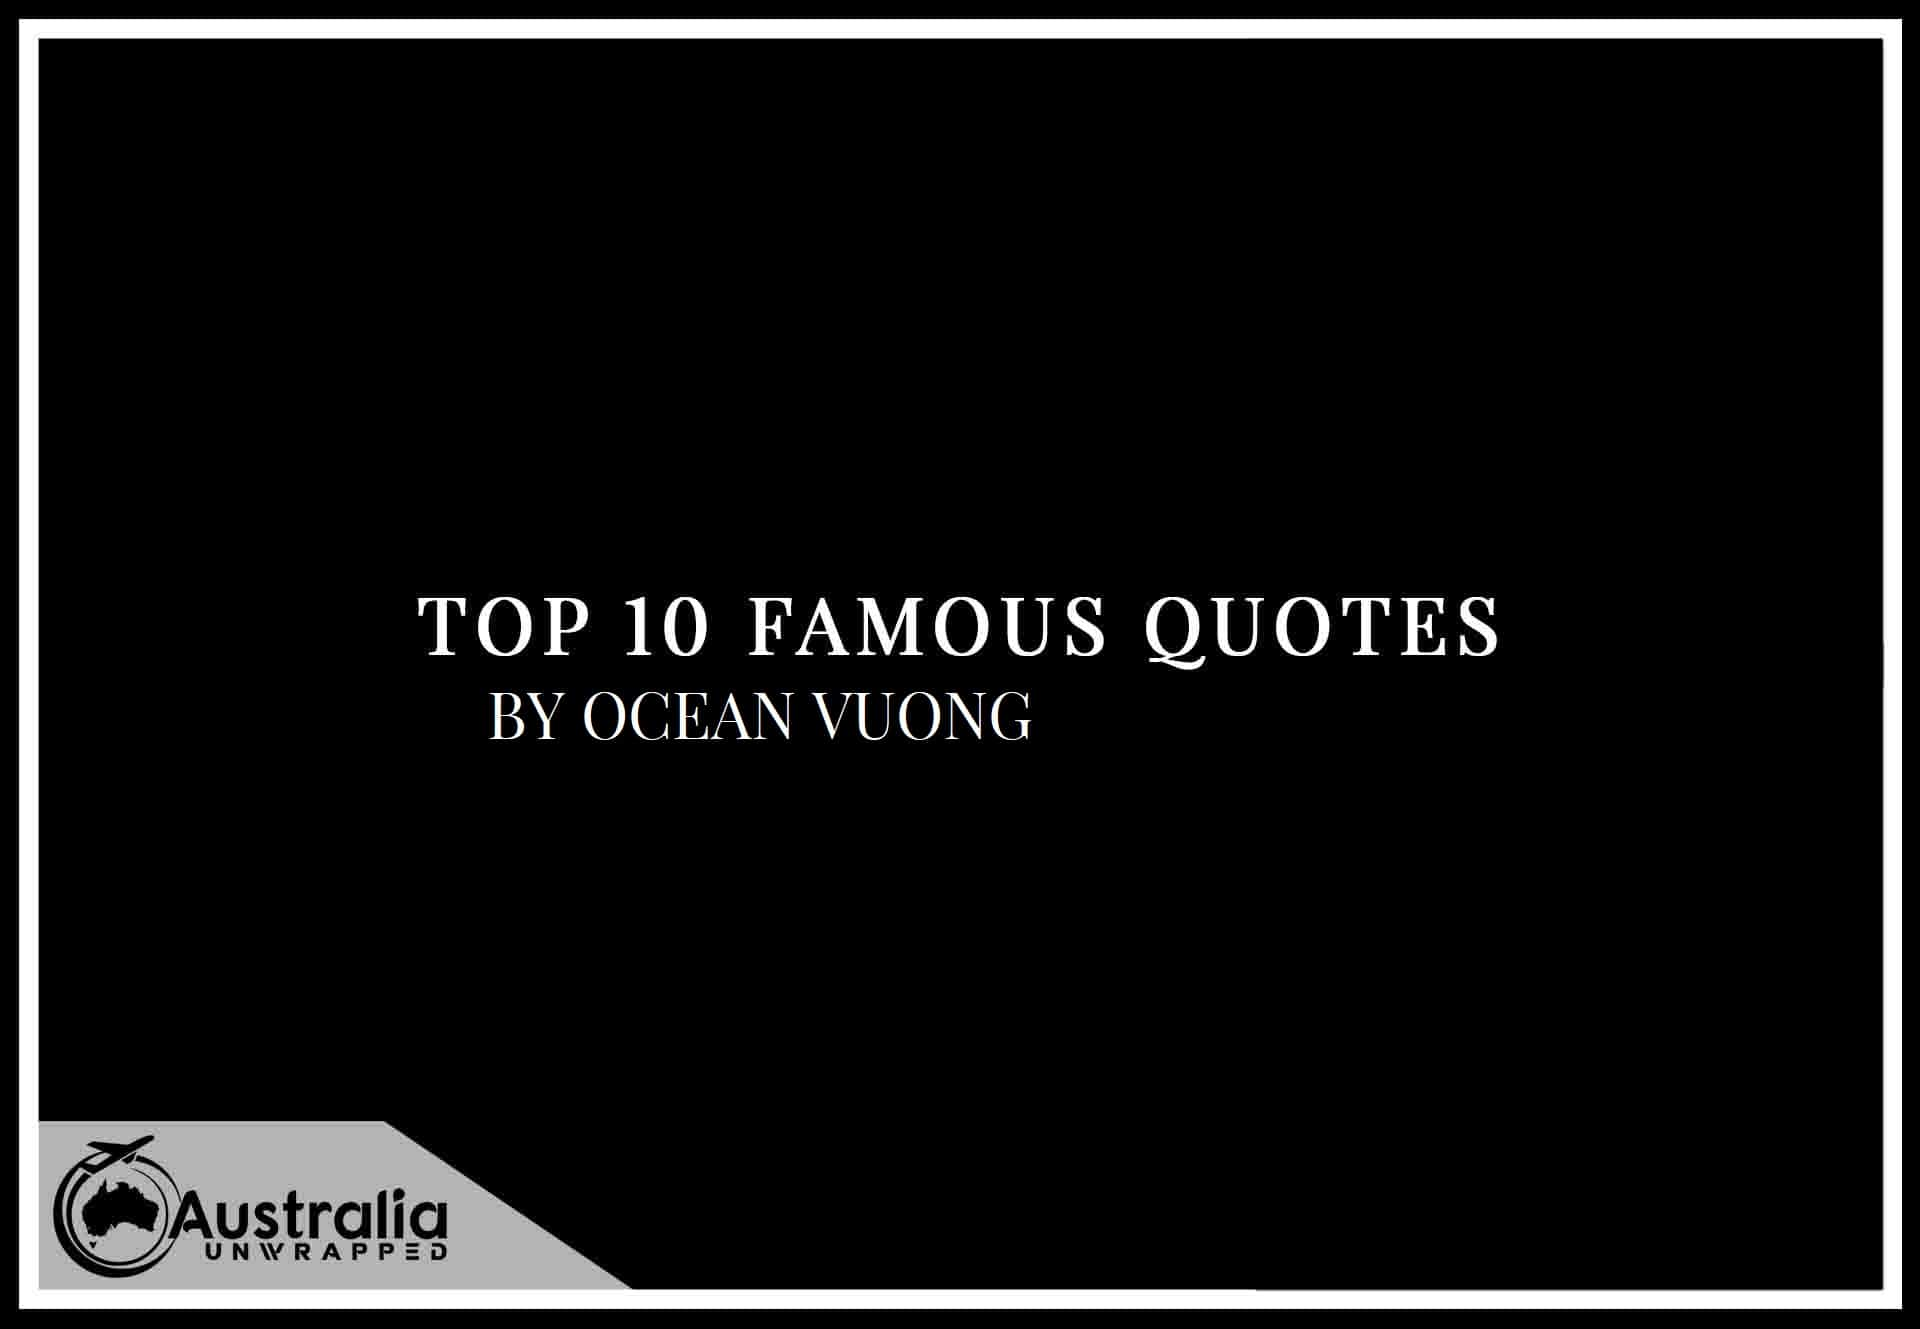 Top 10 Famous Quotes by Author Ocean Vuong